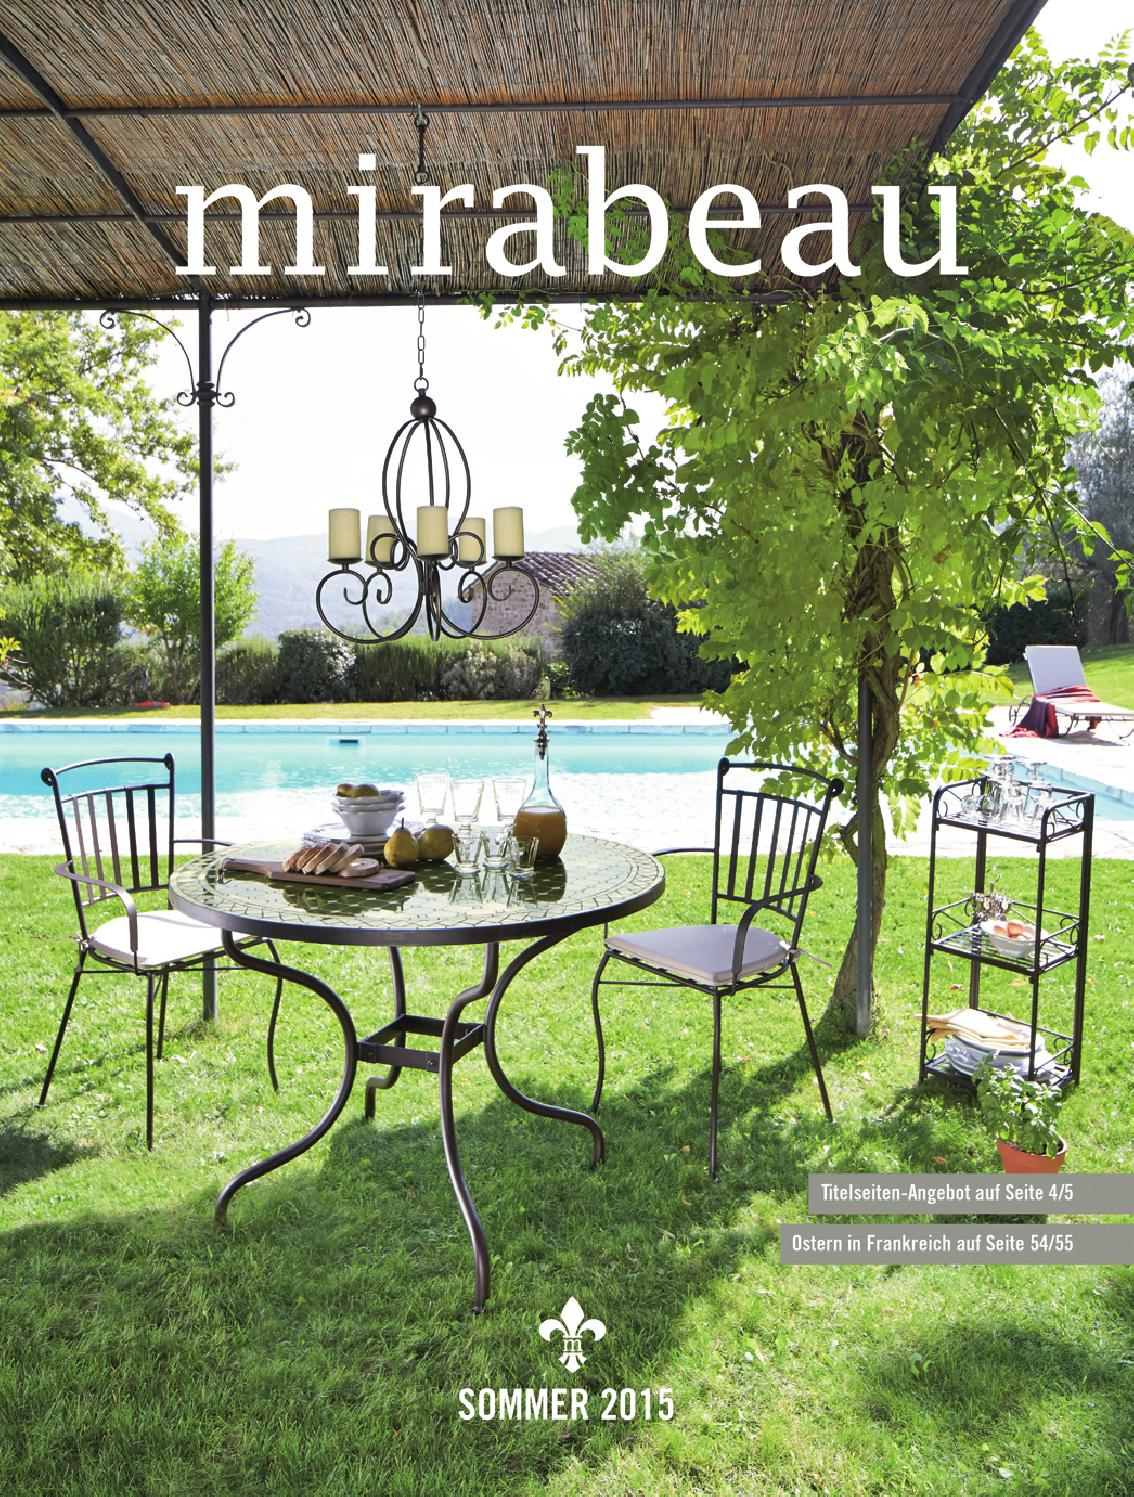 Каталог mirabeau лето 2015 by Prestige - issuu